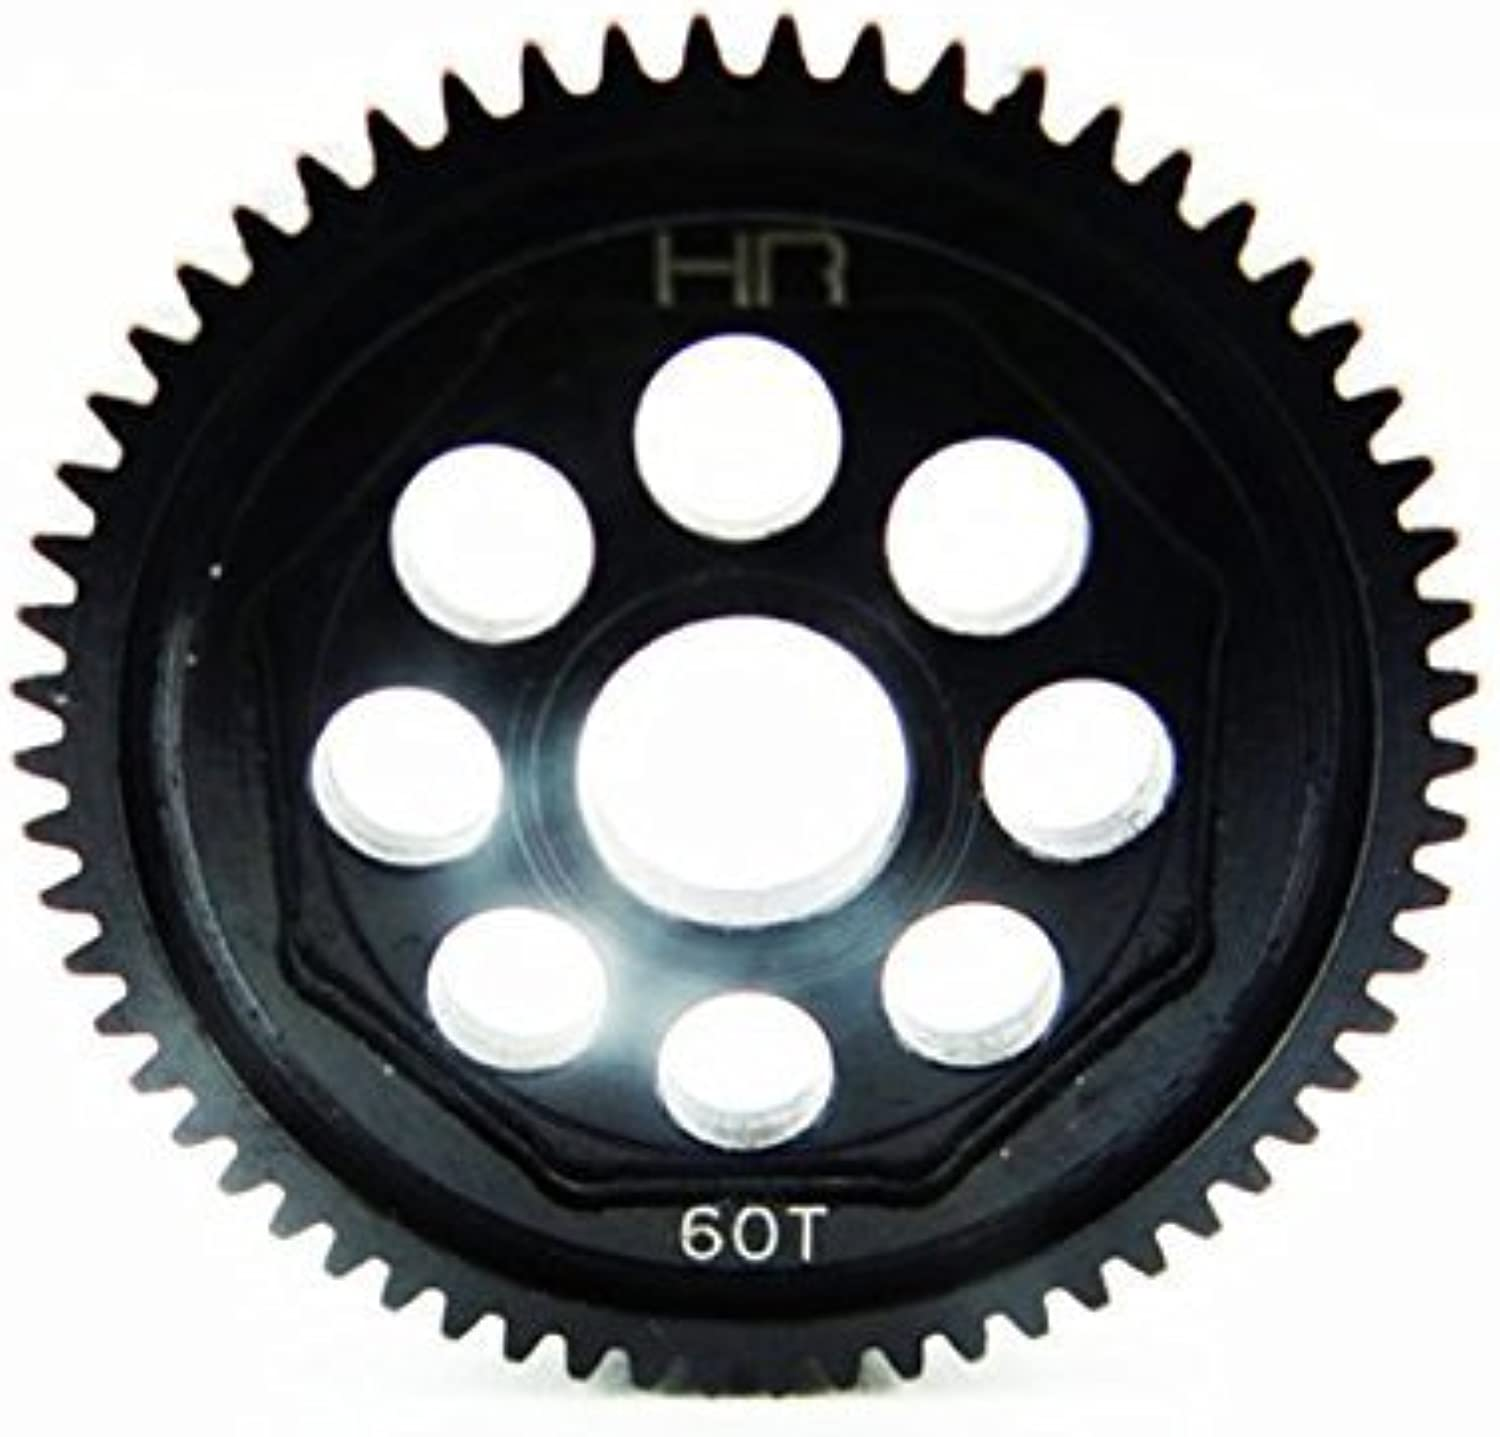 HOTRACING SOFE60M05 Steel Main Gear 0.5 Module 60T Mini 8ight by Hot Racing